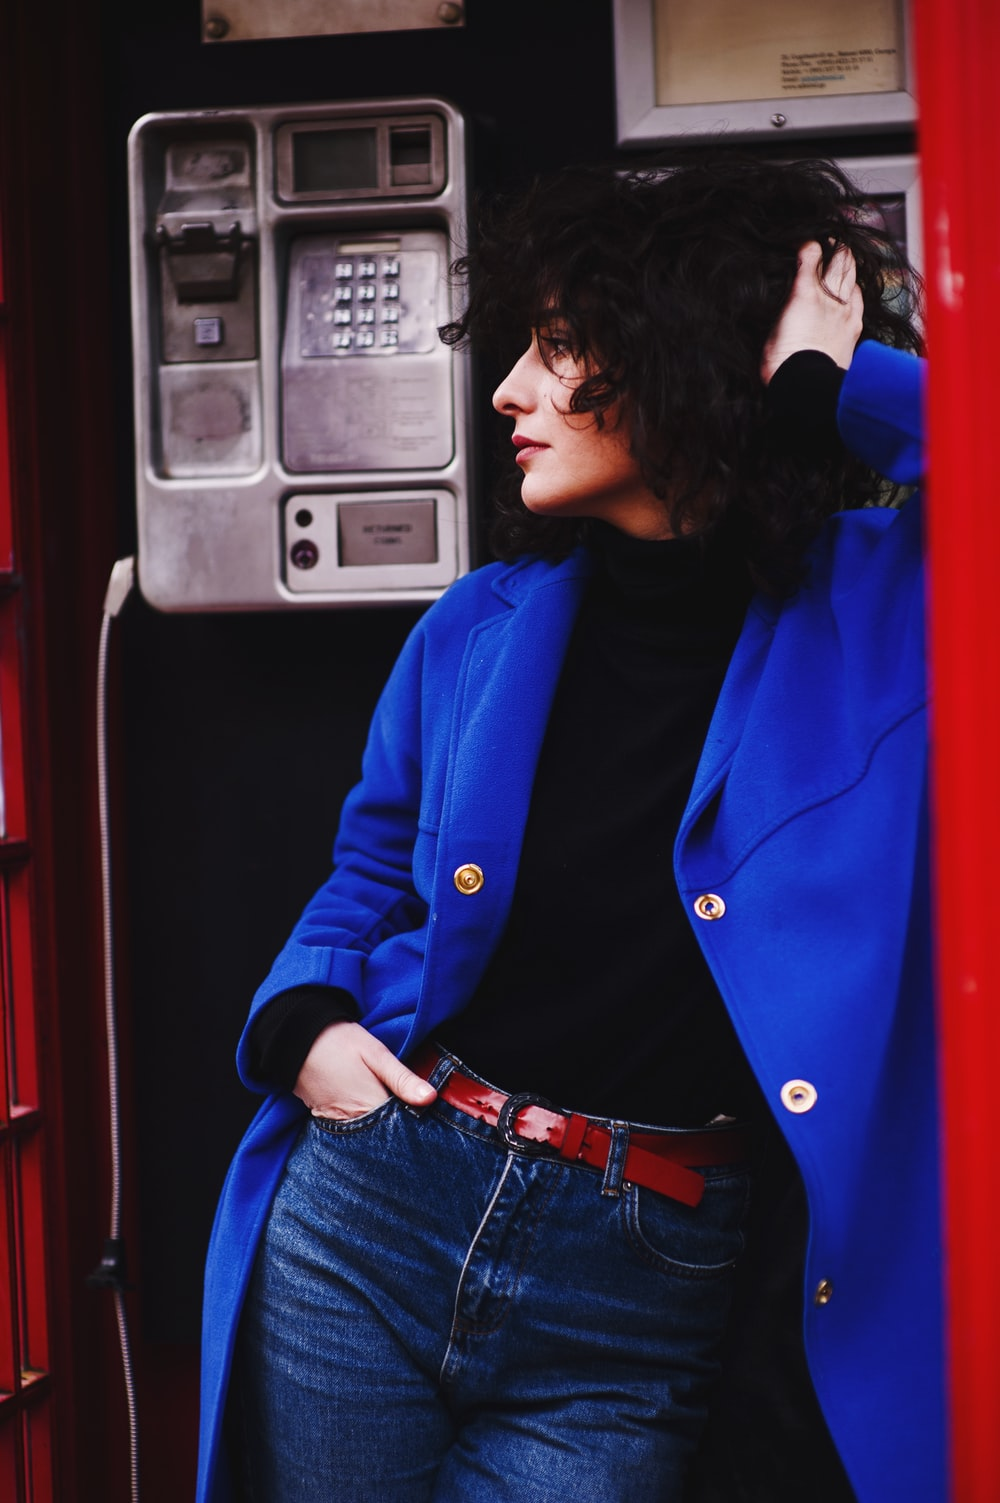 woman leaning on telephone booth wearing blue leather coat